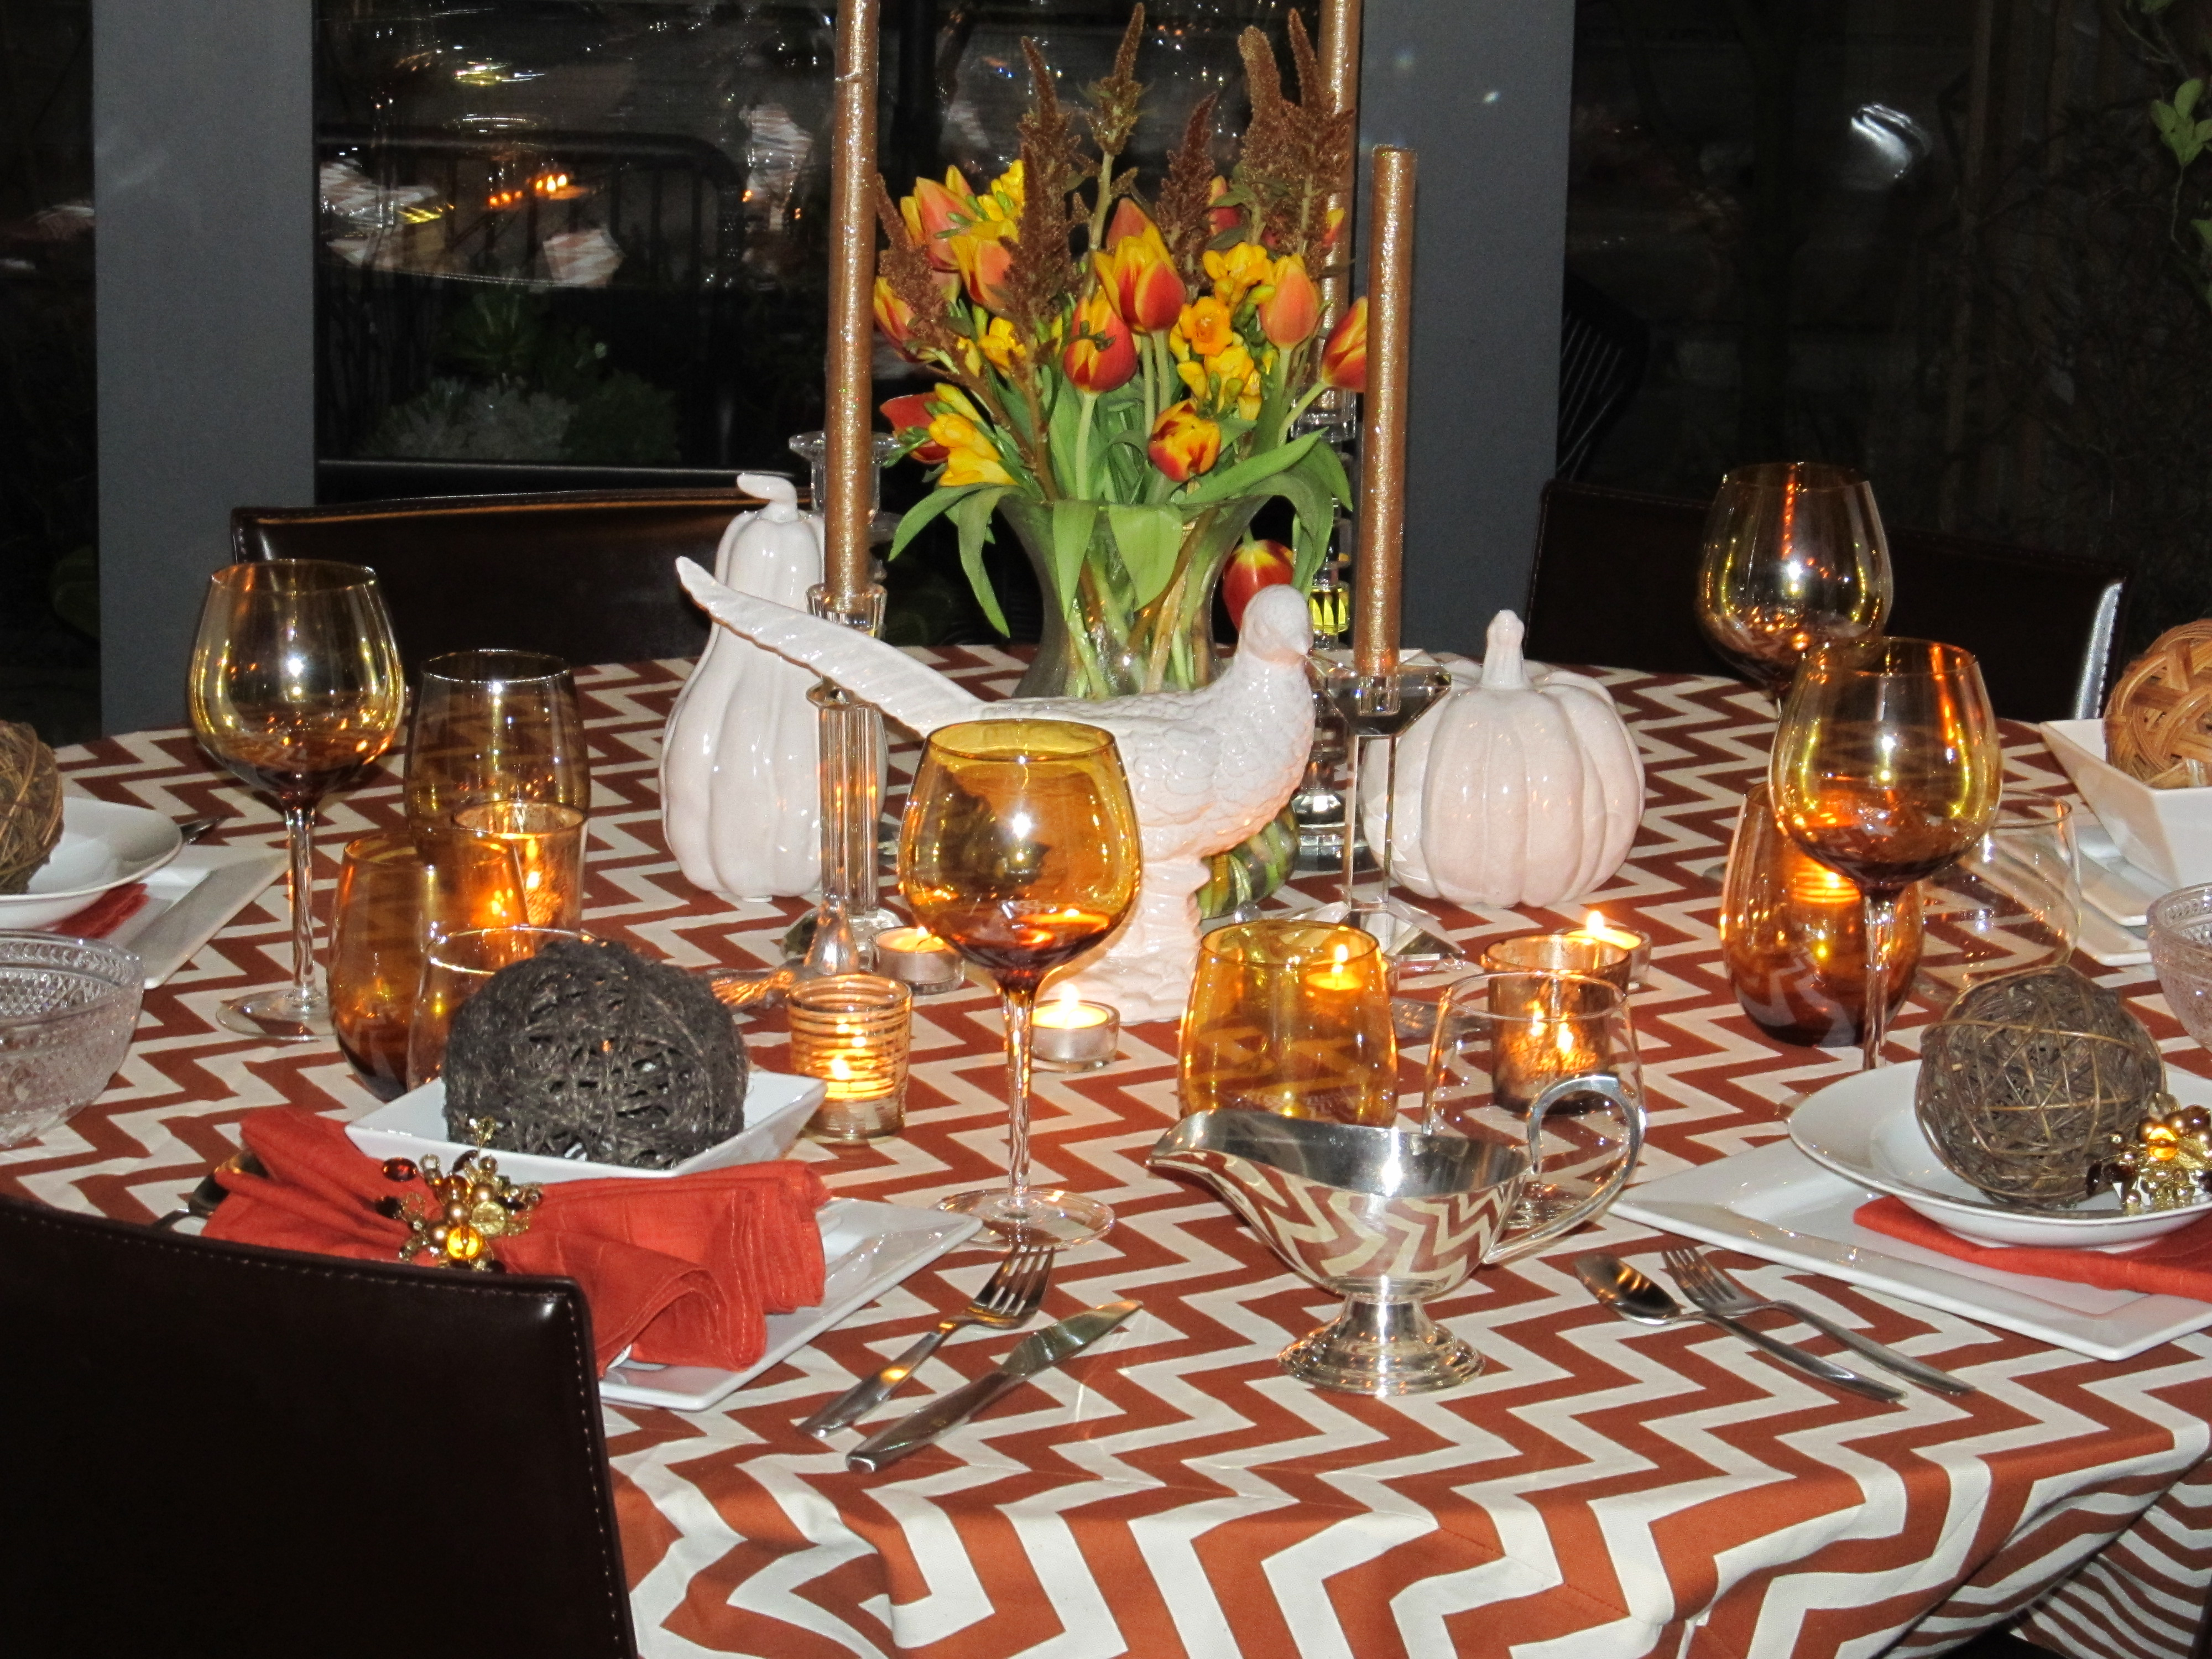 Thanksgiving table settings courtney out loud for Decoration ideas for thanksgiving dinner